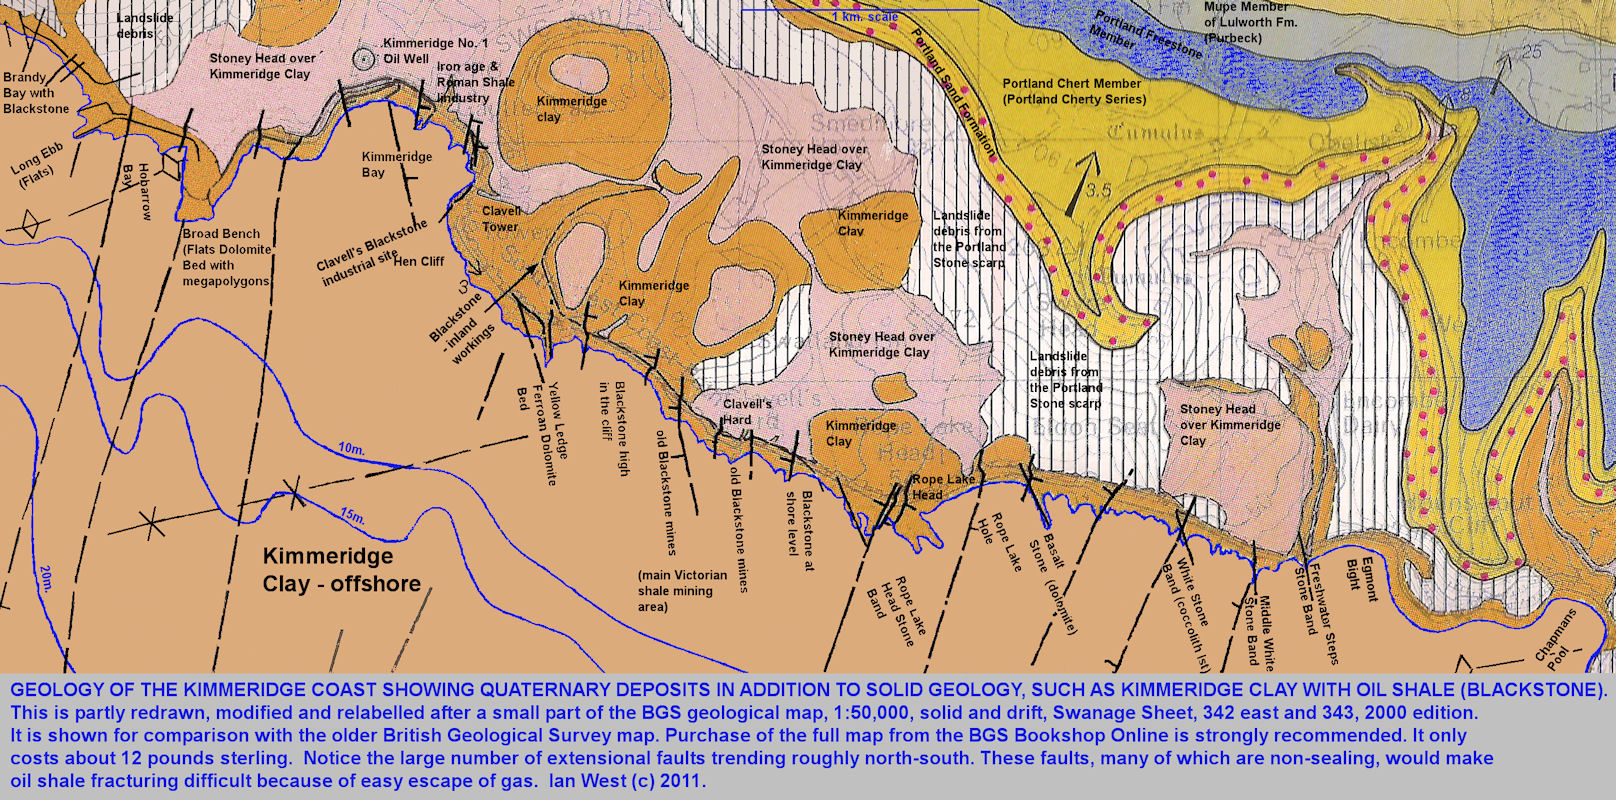 Geology of the Kimmeridge coast, Dorset, partly redrawn after a modern BGS geological map